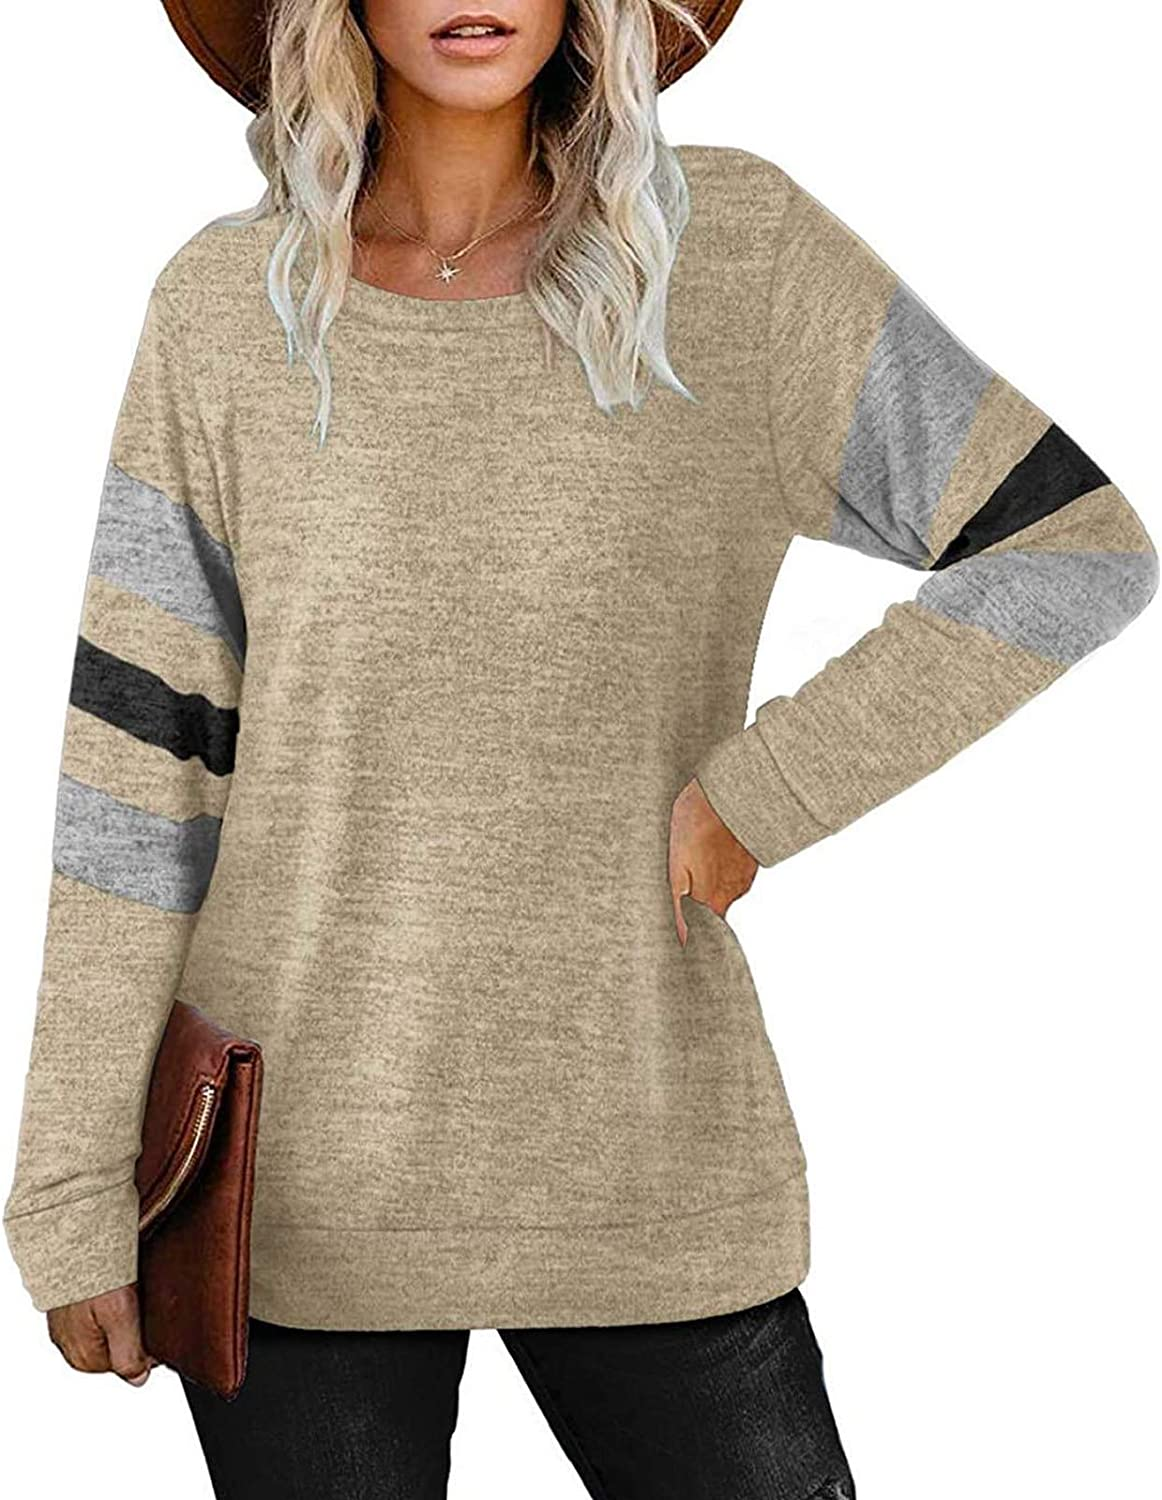 Casual Fall Pullover Oversized T-shirts 2021 Womens Tunic Tops Long Sleeve Loose Fitting Daily Casual Tops